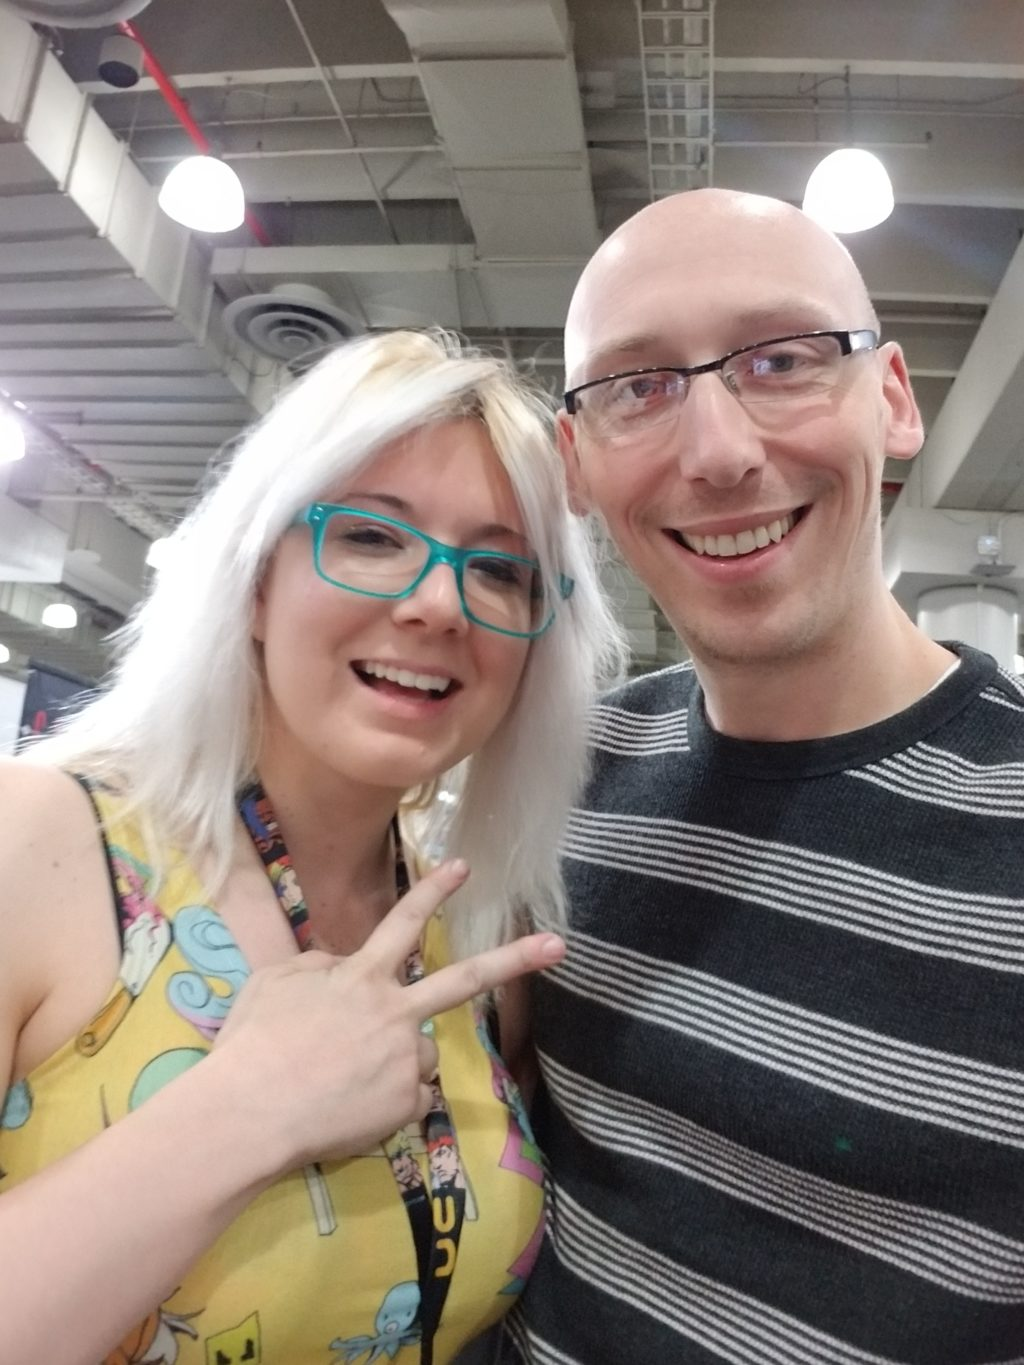 ashley riot cosplay and artist with trevor mueller at nycc 2018